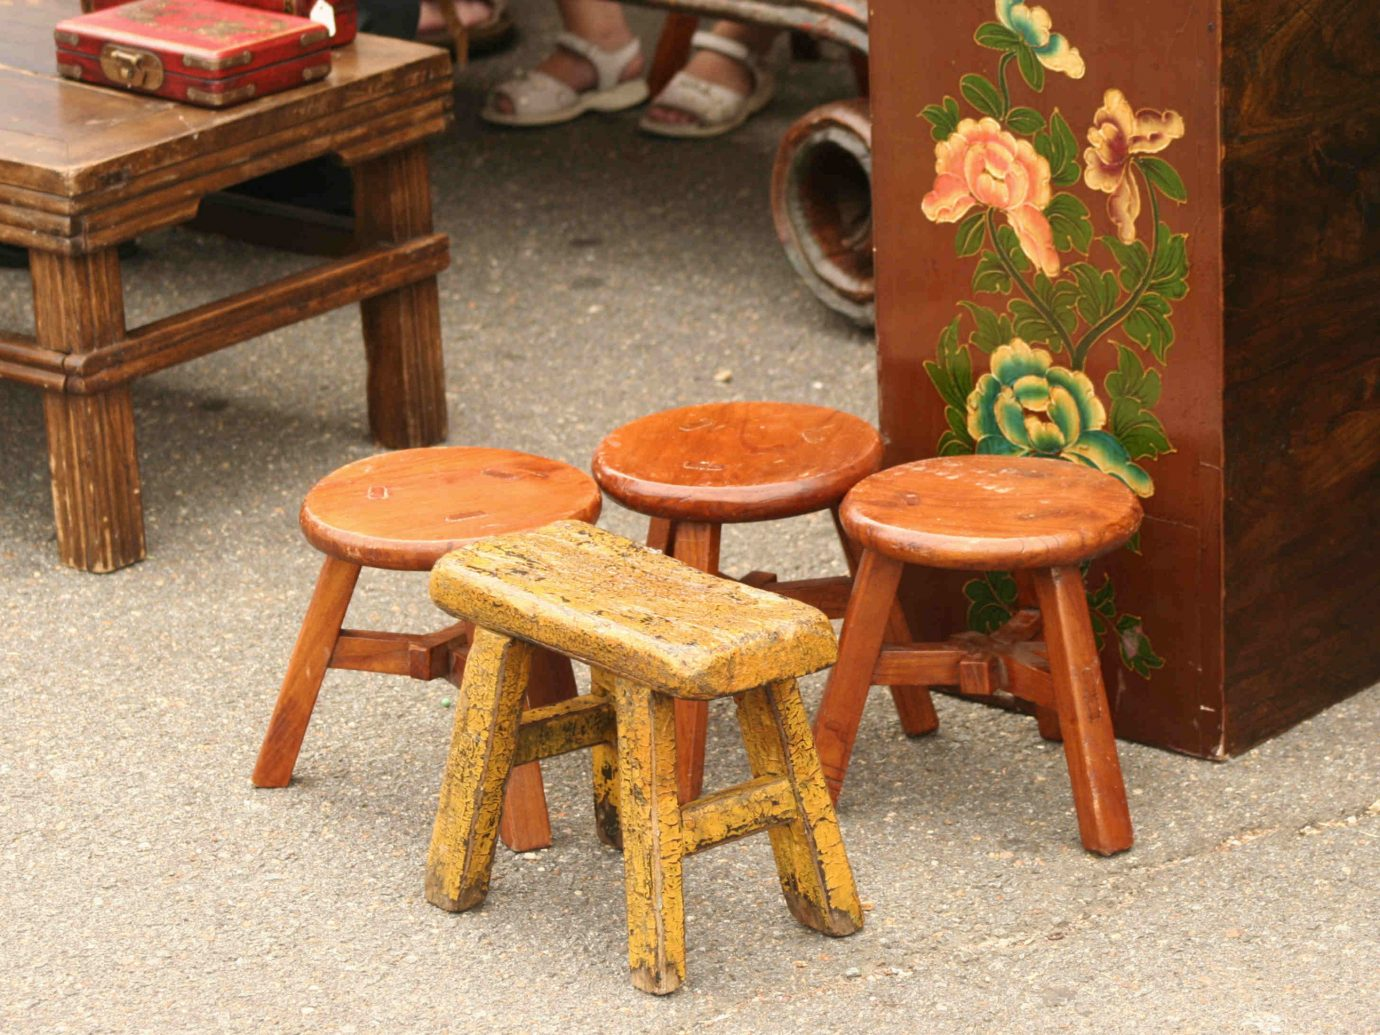 Trip Ideas floor furniture man made object chair table room seat wooden wood stool antique dining table